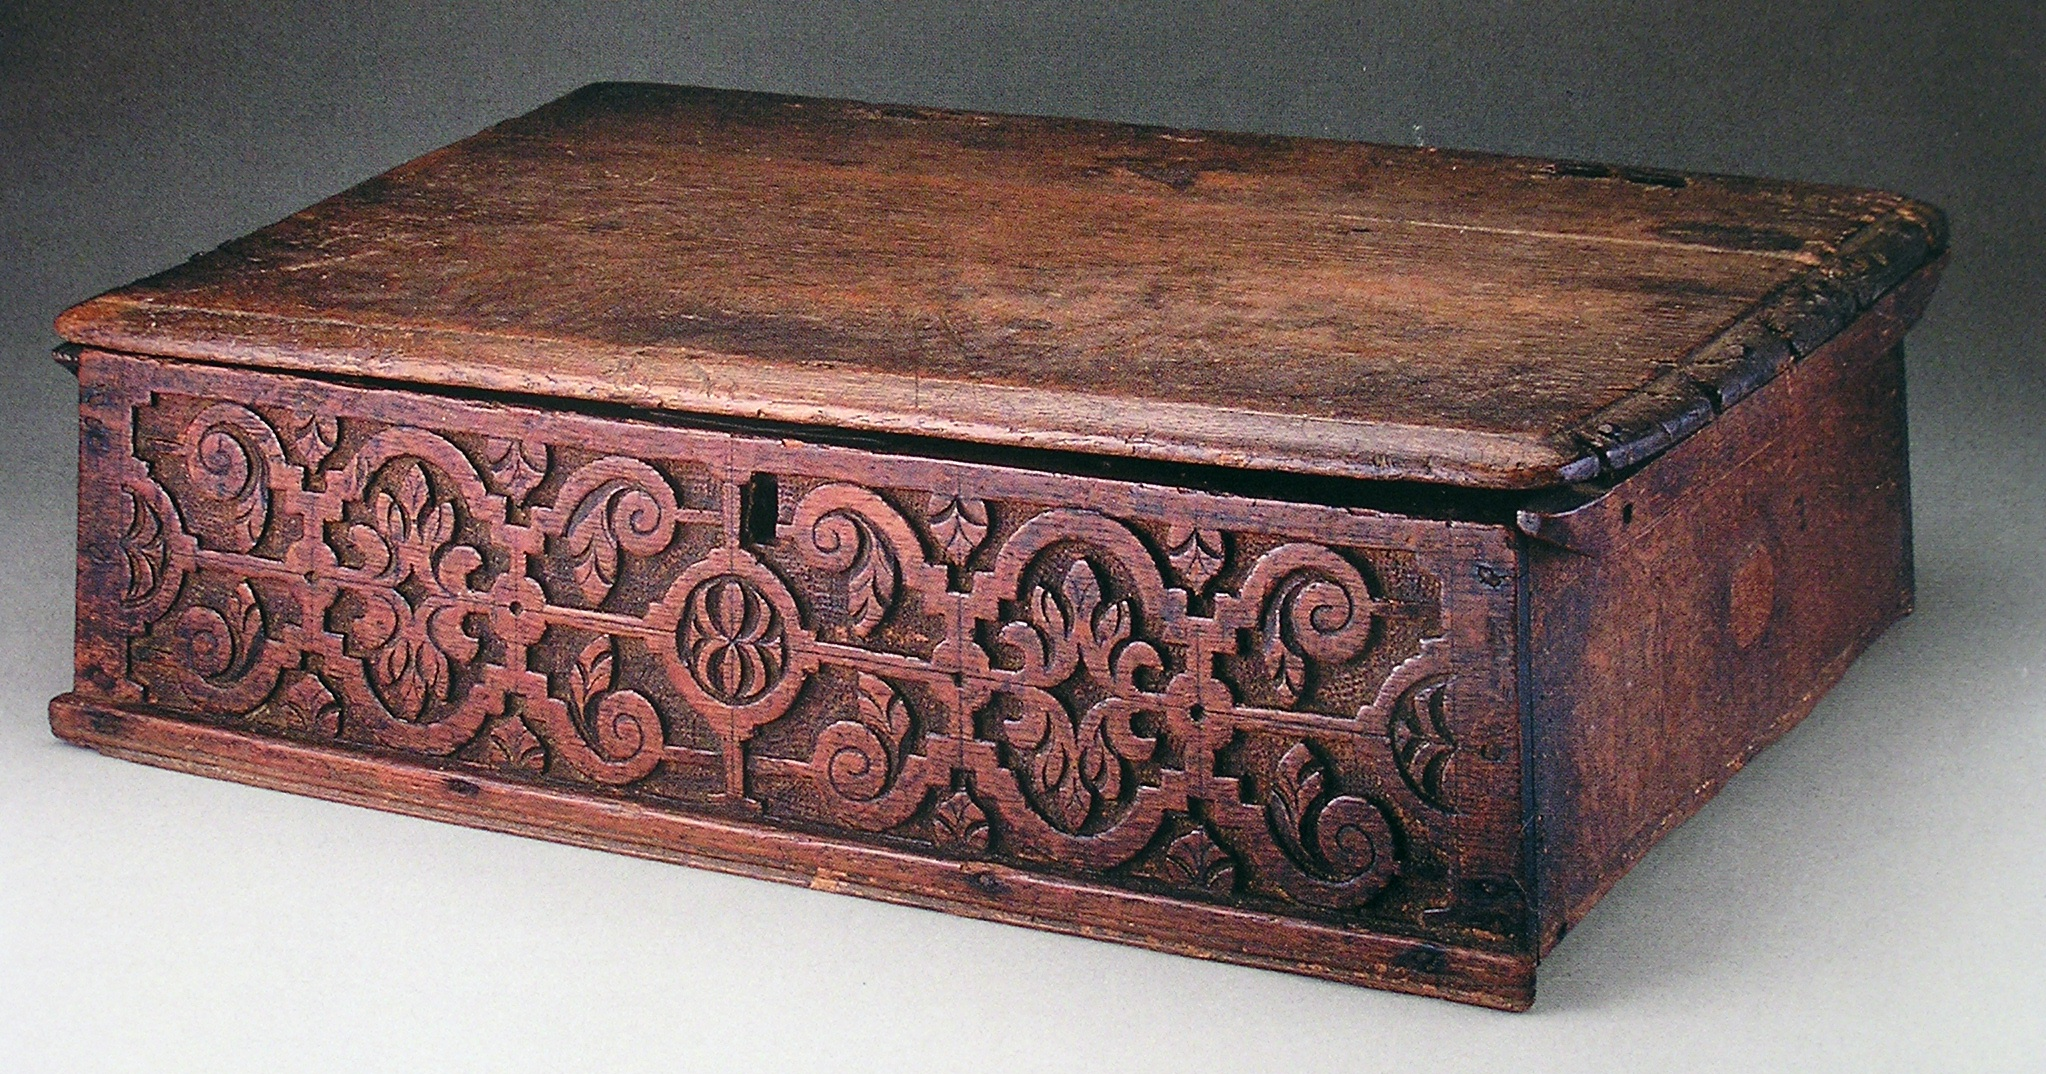 Wood carving designs furniture - Carved Box Thomas Dennis 1660s 1700 Ipswich Massachusetts